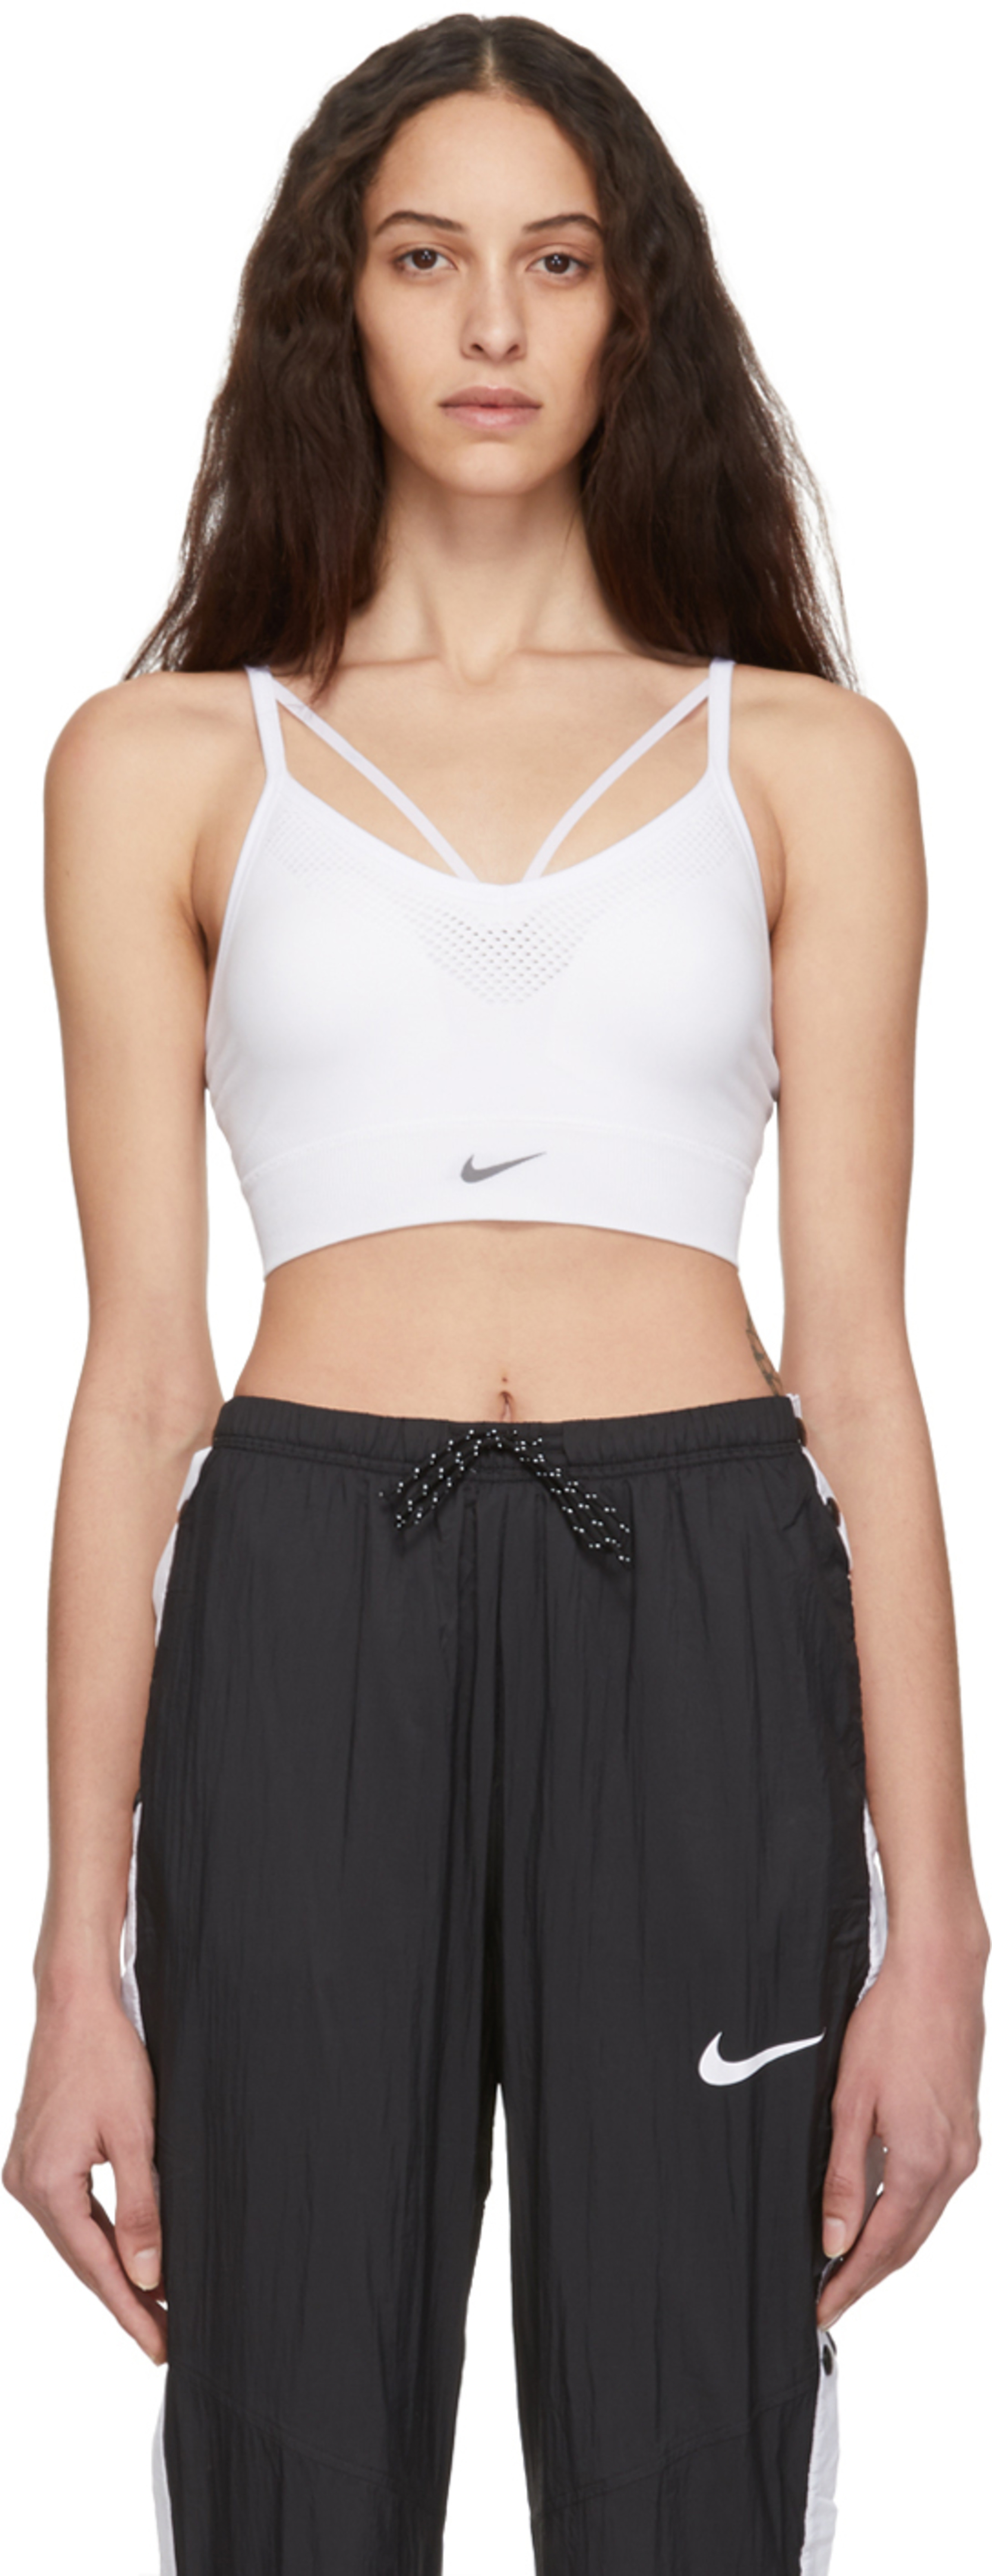 87aaa43a89c2 Nike for Women SS19 Collection